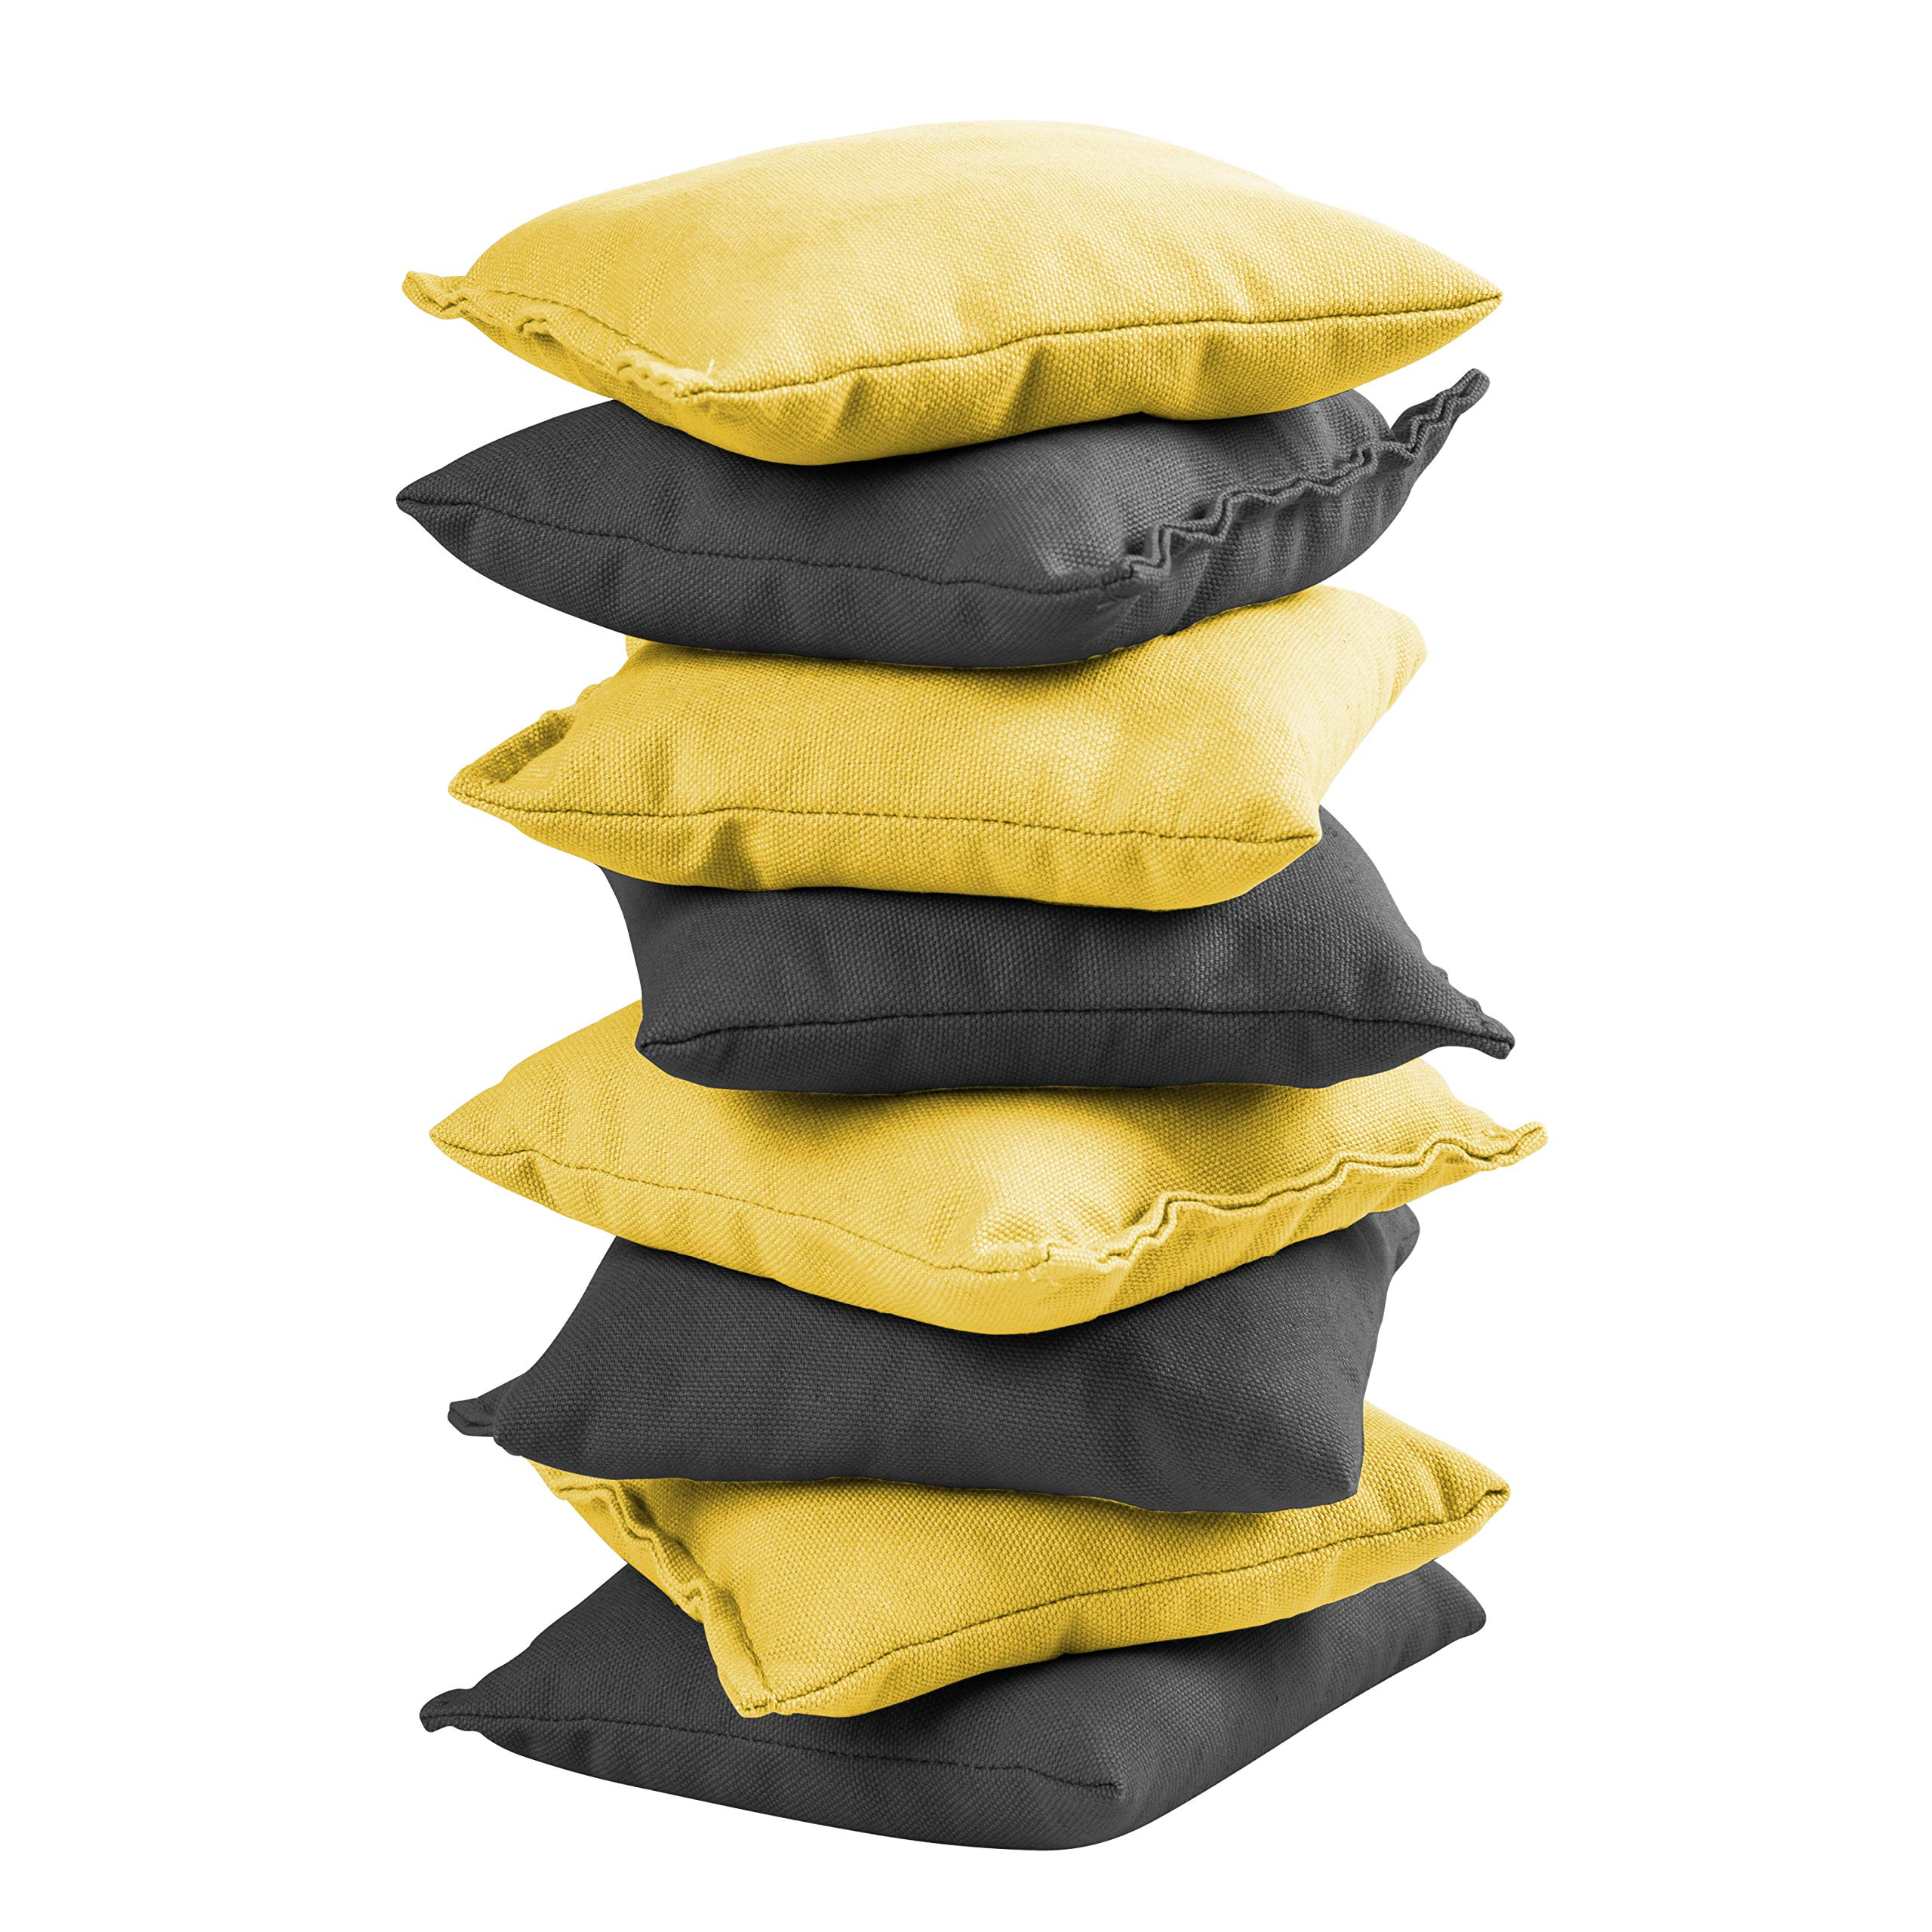 Victory Tailgate 8 Colored Corn Filled Regulation Cornhole Bags with Drawstring Pack (4 Black, 4 Yellow) by Victory Tailgate (Image #2)